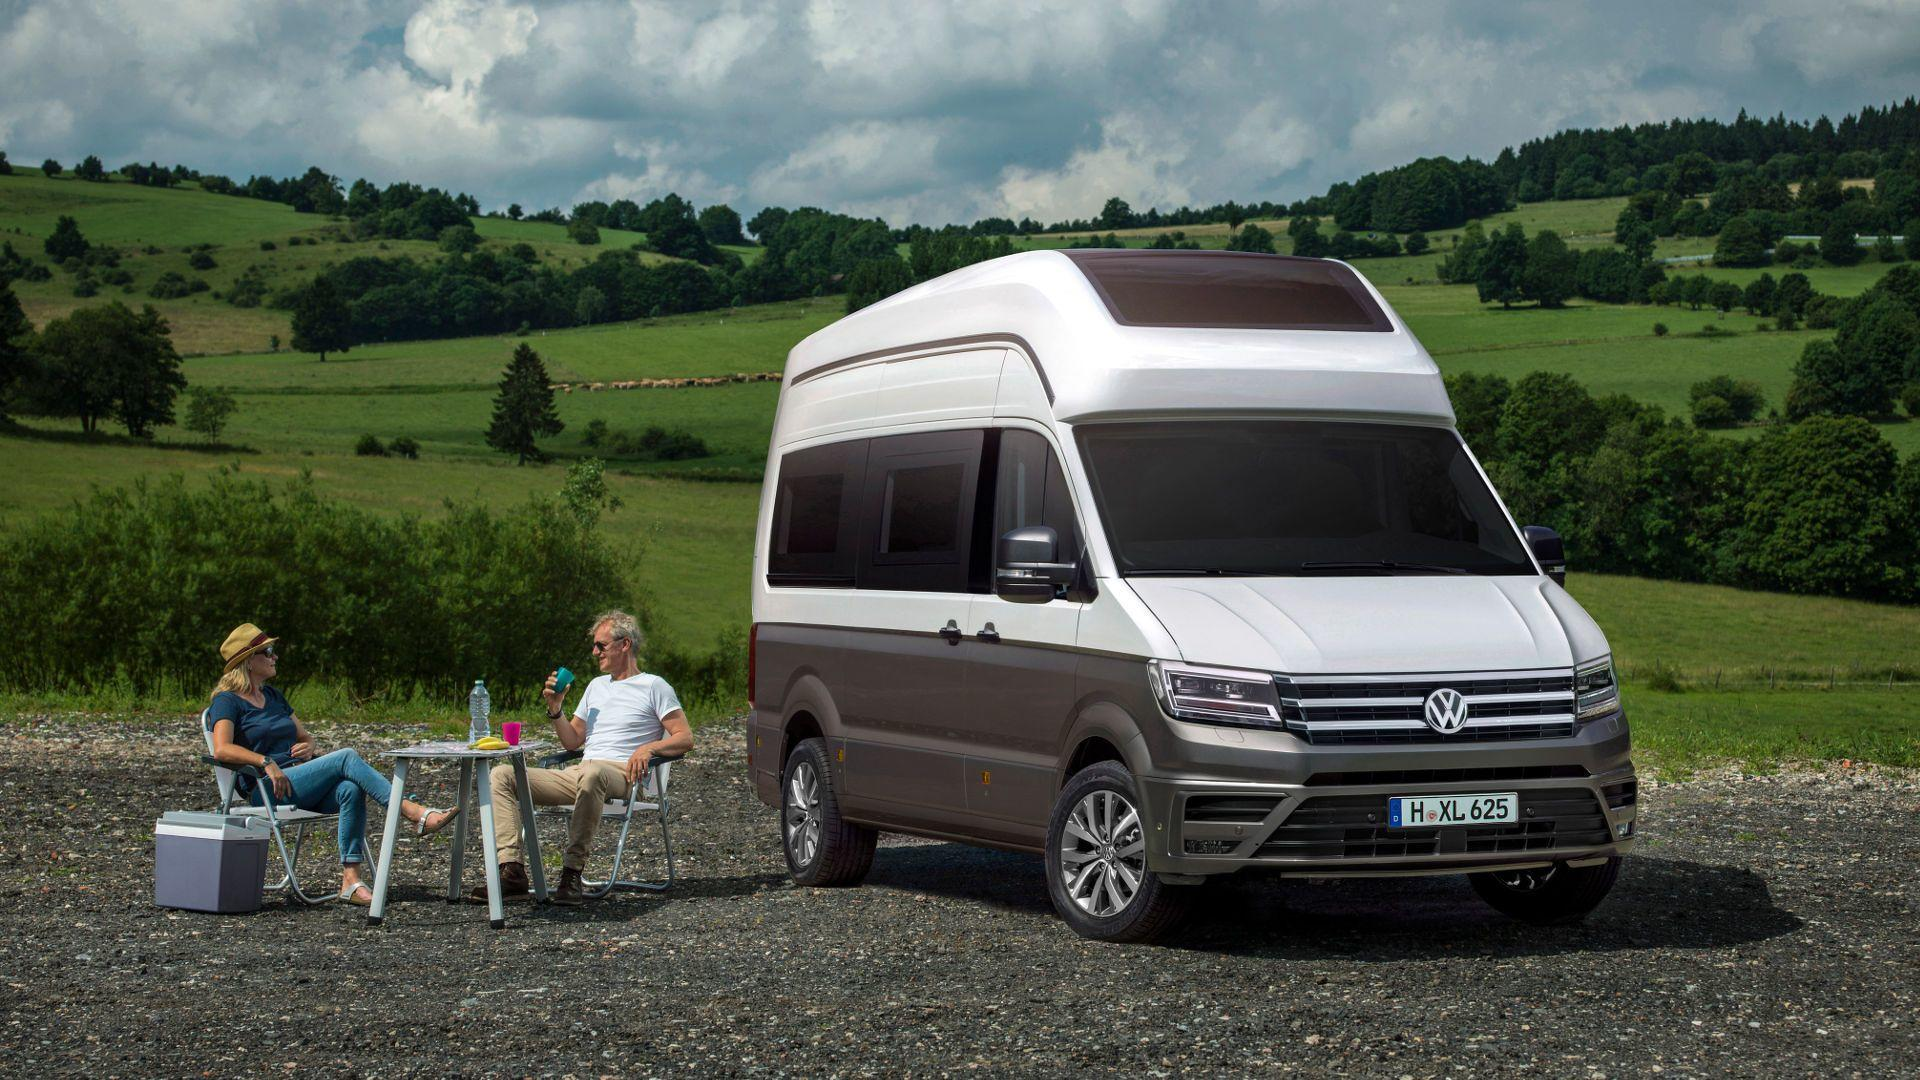 VW California Xxl >> Vw California Xxl Concept Is The Ultimate Crafter Motorhome